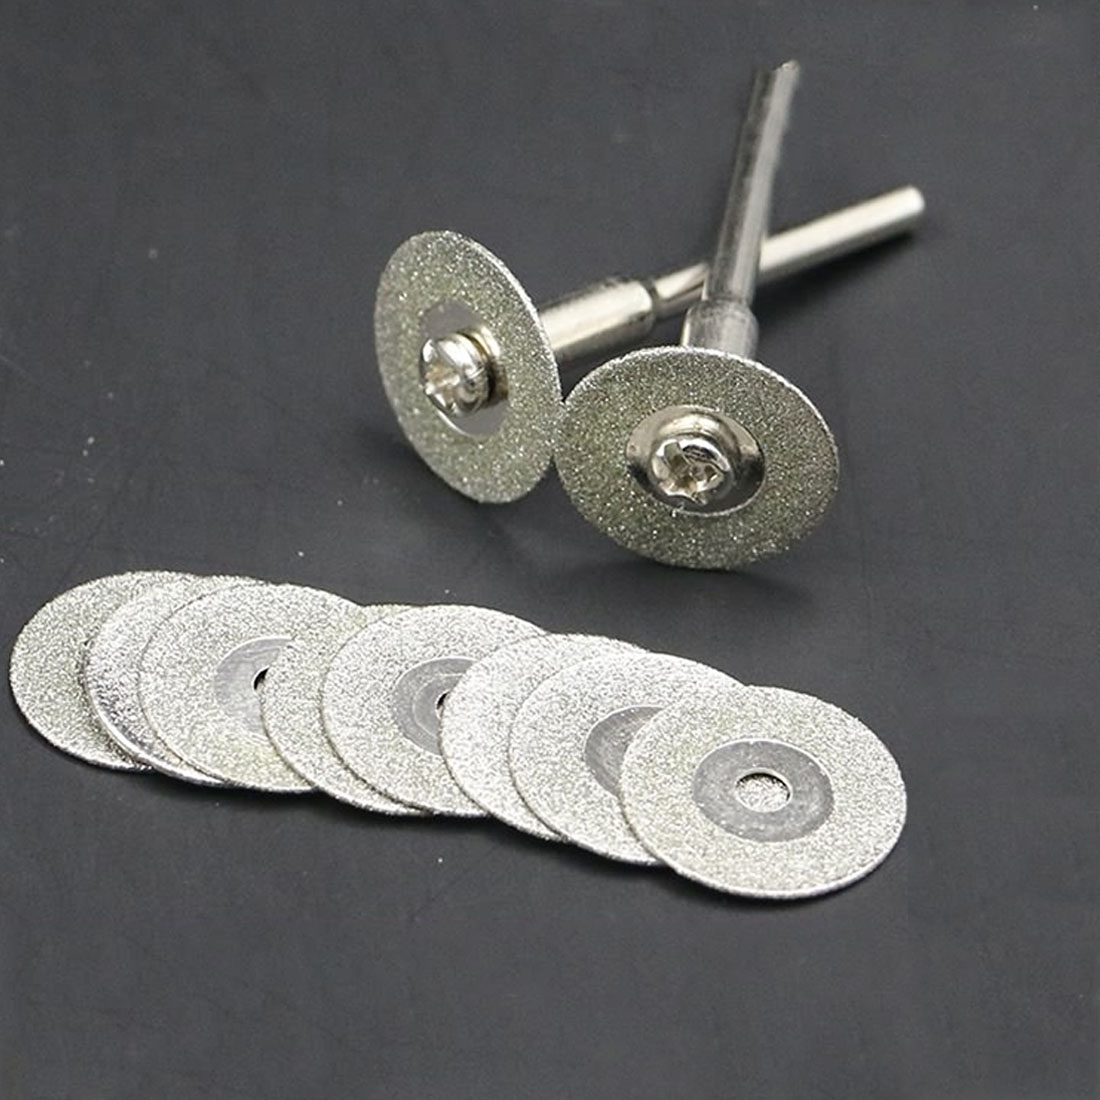 Hot 60mm Diamond Cutting Disc For Mini Drill Dremel Tools Diamond Disc Steel Rotary Tool Circular Saw Abrasive Saw Blade